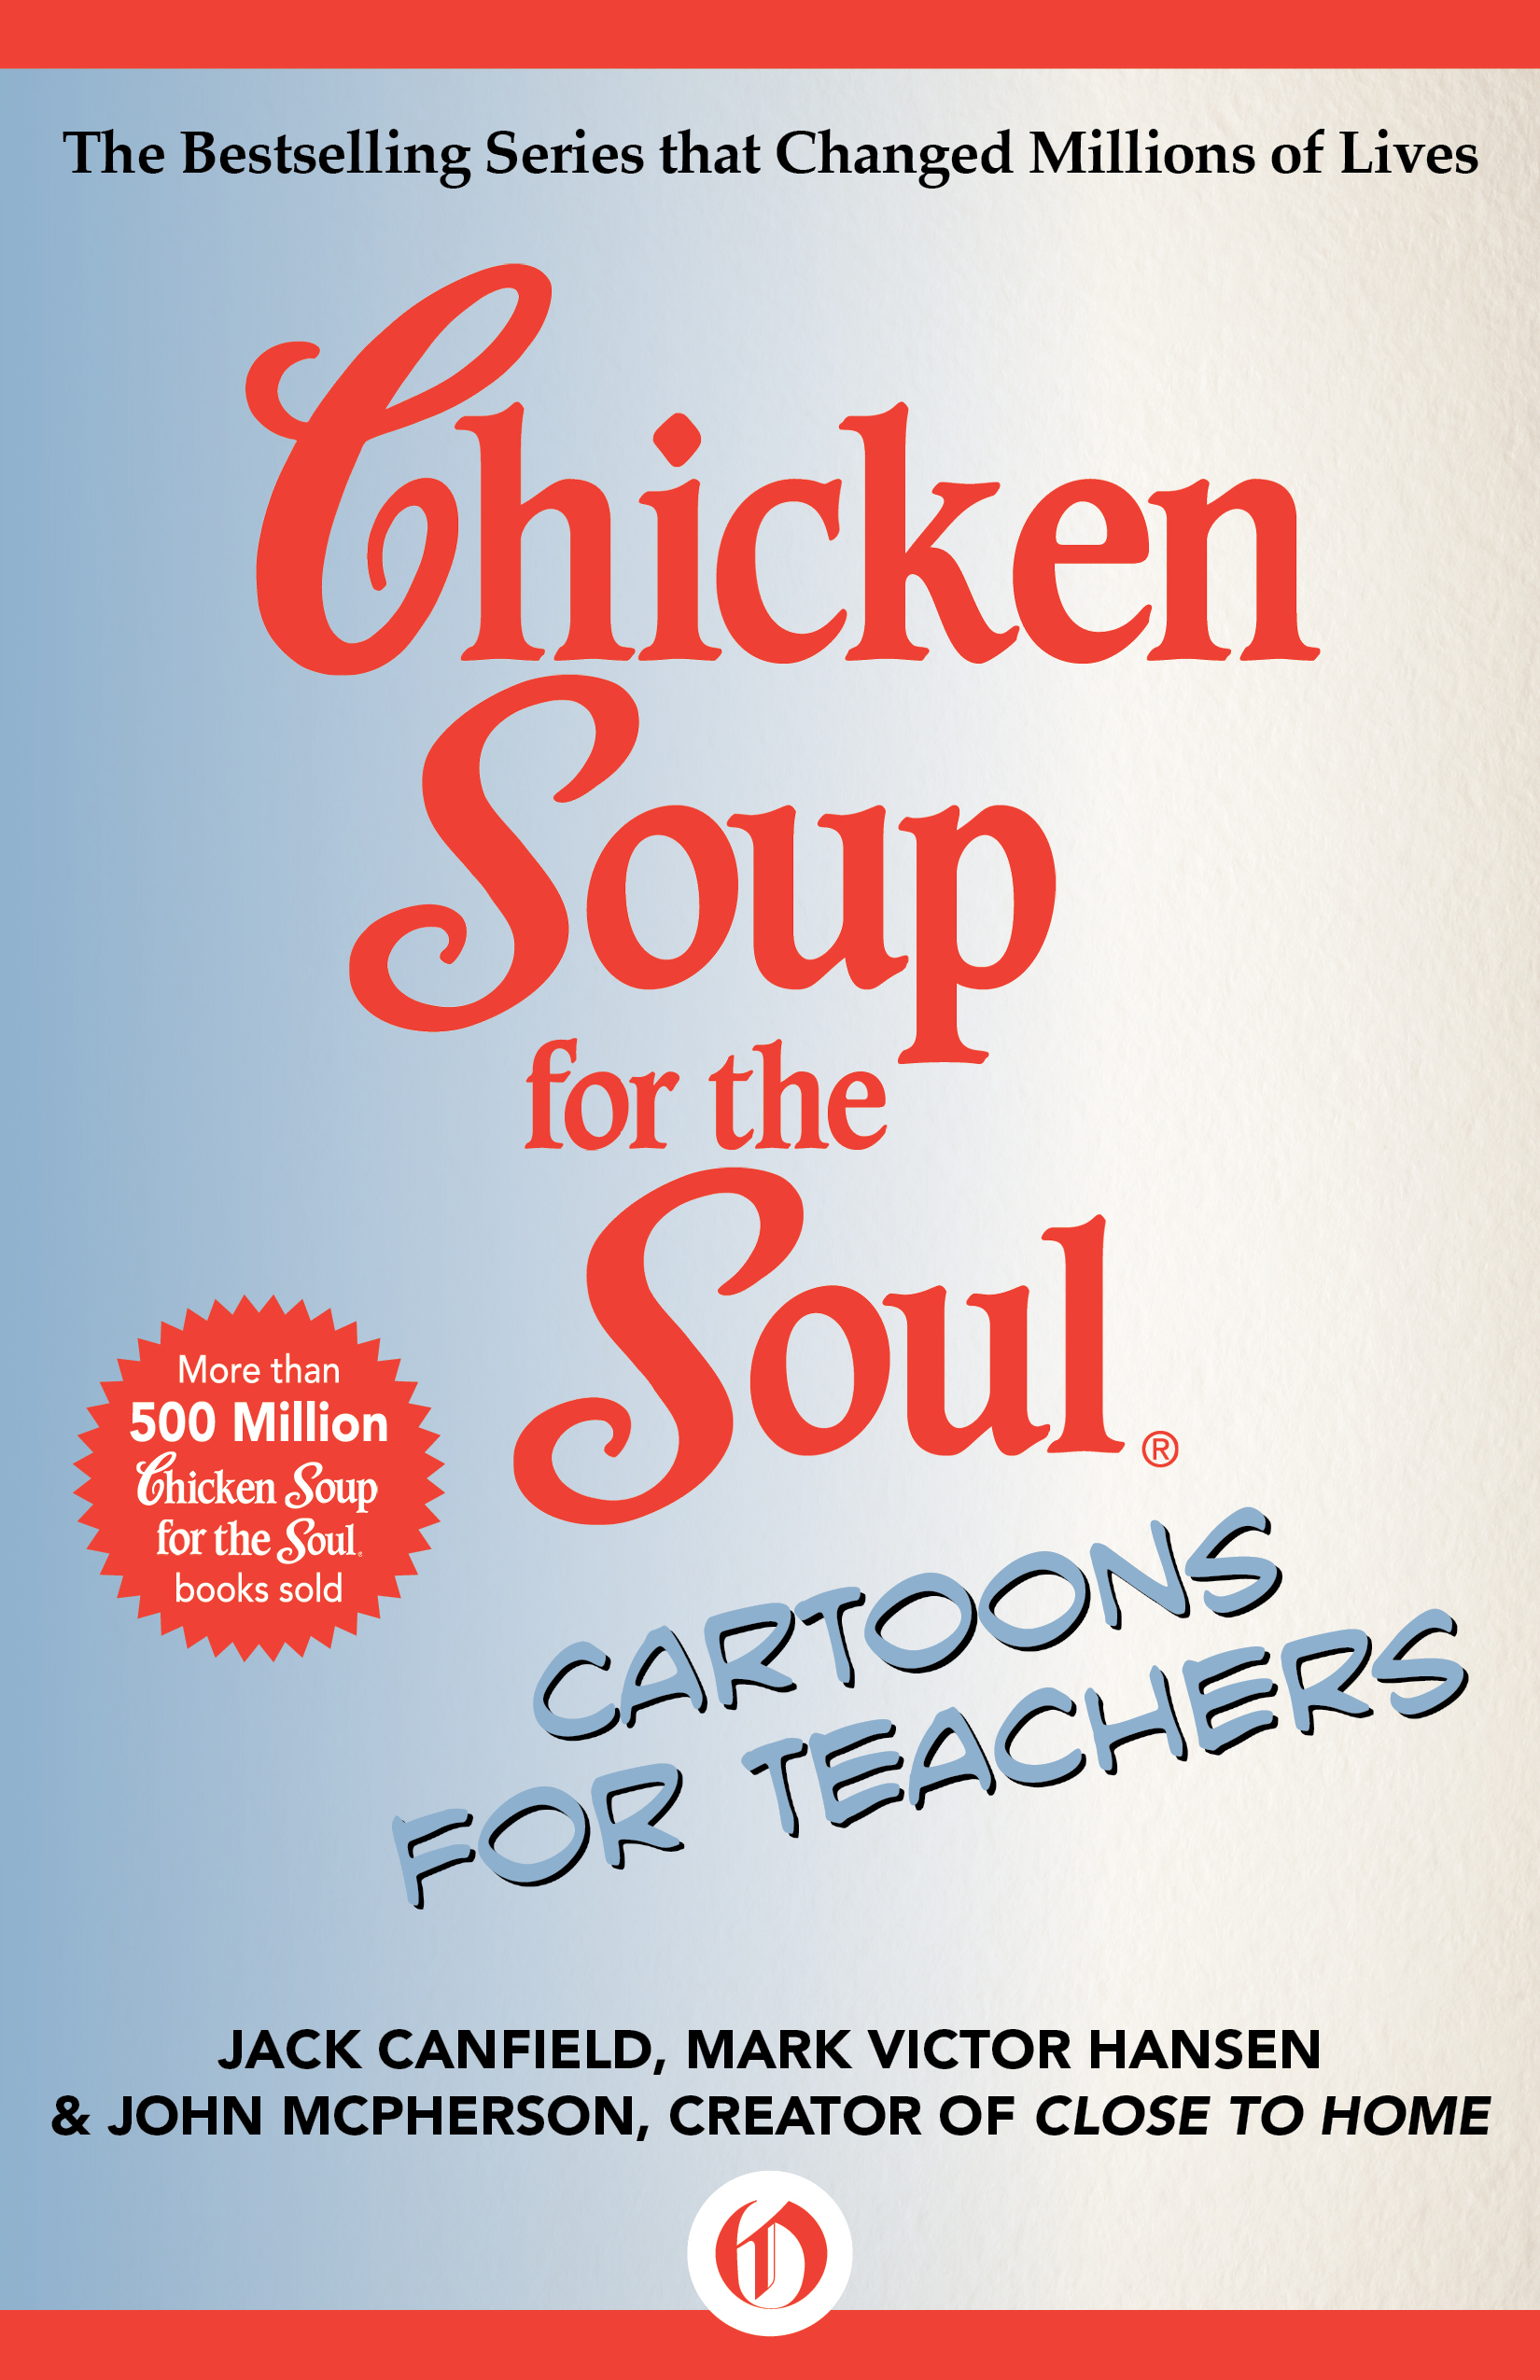 Chicken Soup for the Soul Cartoons for Teachers